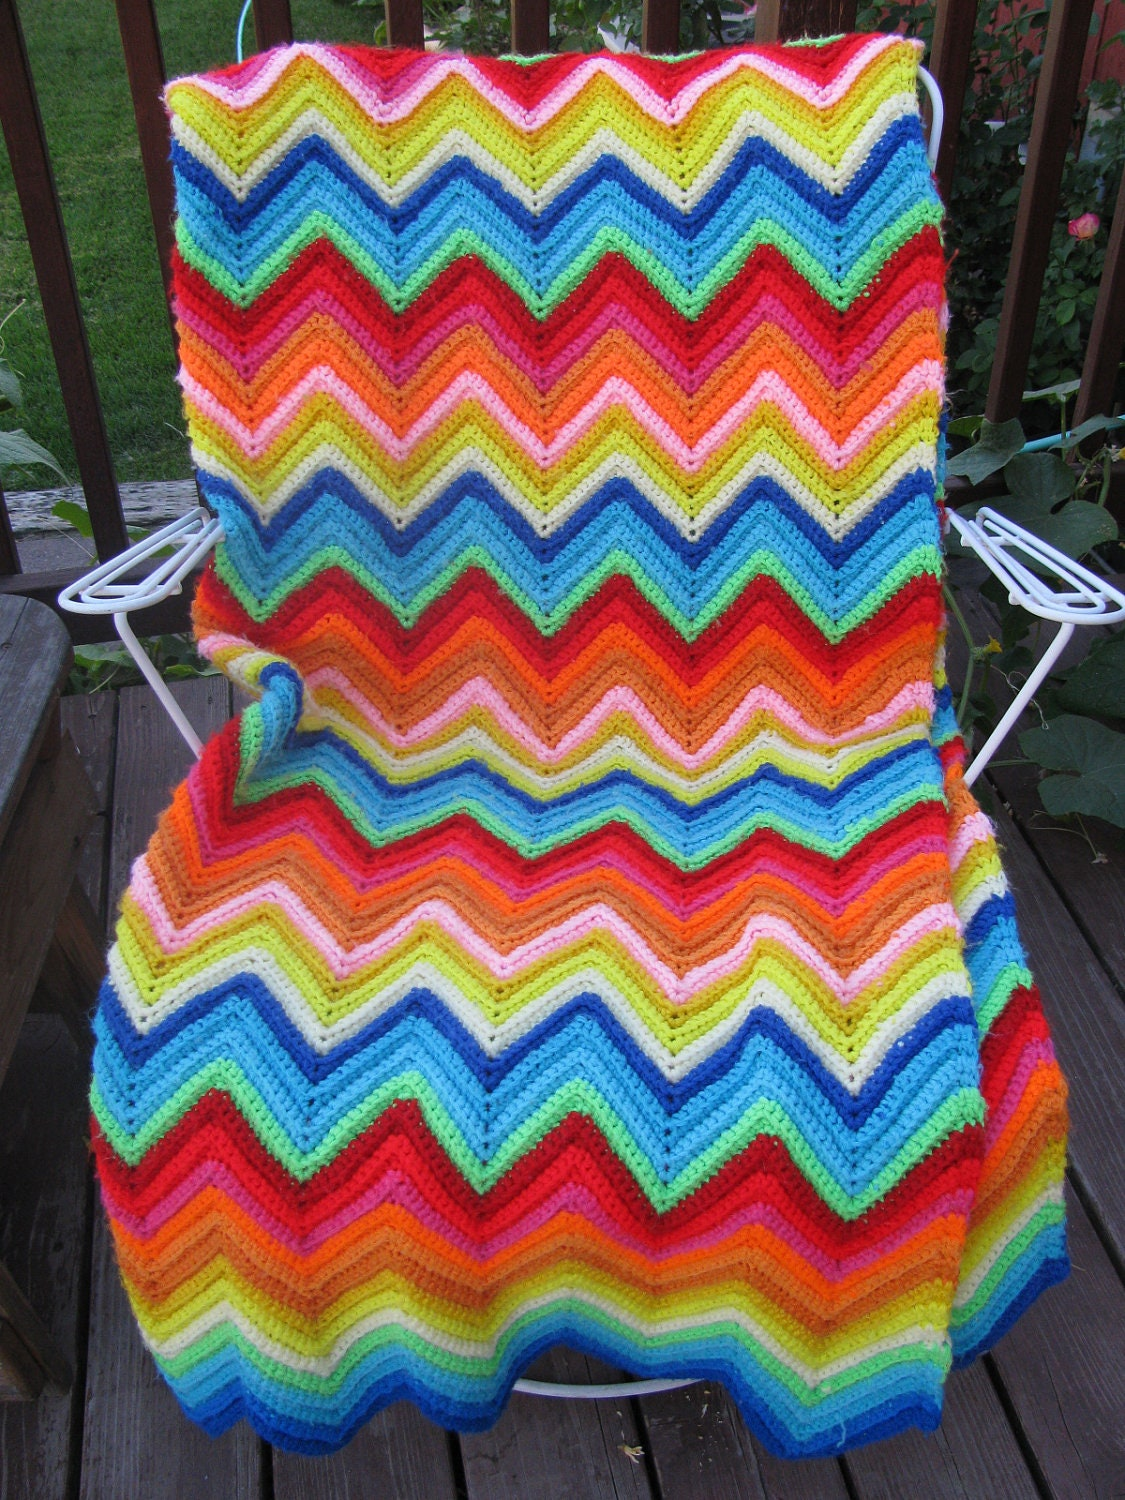 Knitted Zig Zag Afghan Pattern : Handmade Vintage Knitted Afghan Zig Zag Chevron by fabricdesigns